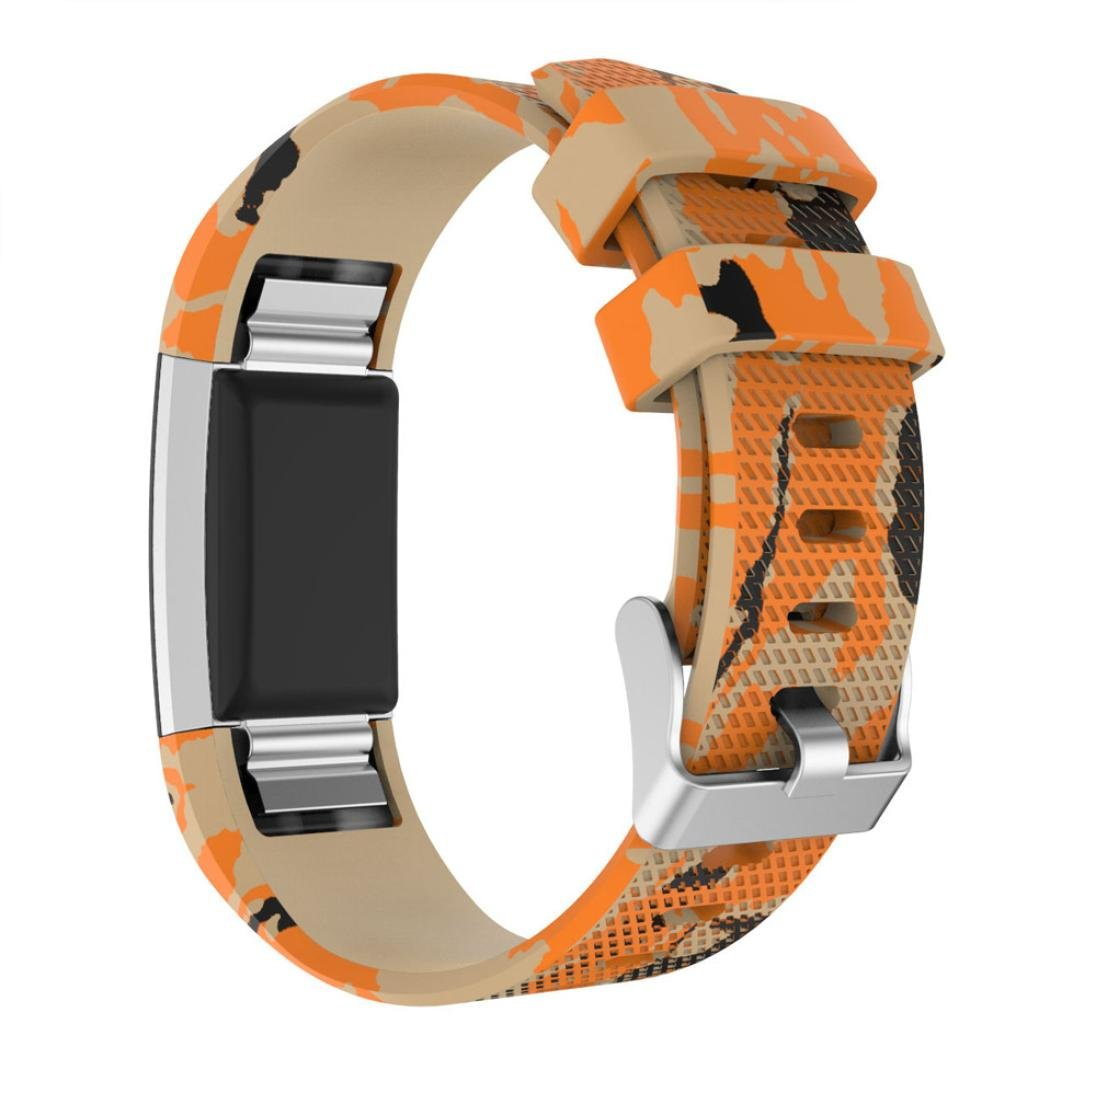 TAOtTAO Sport Silicone Replacement Wristband Wrist Strap For Fitbit Charge 2